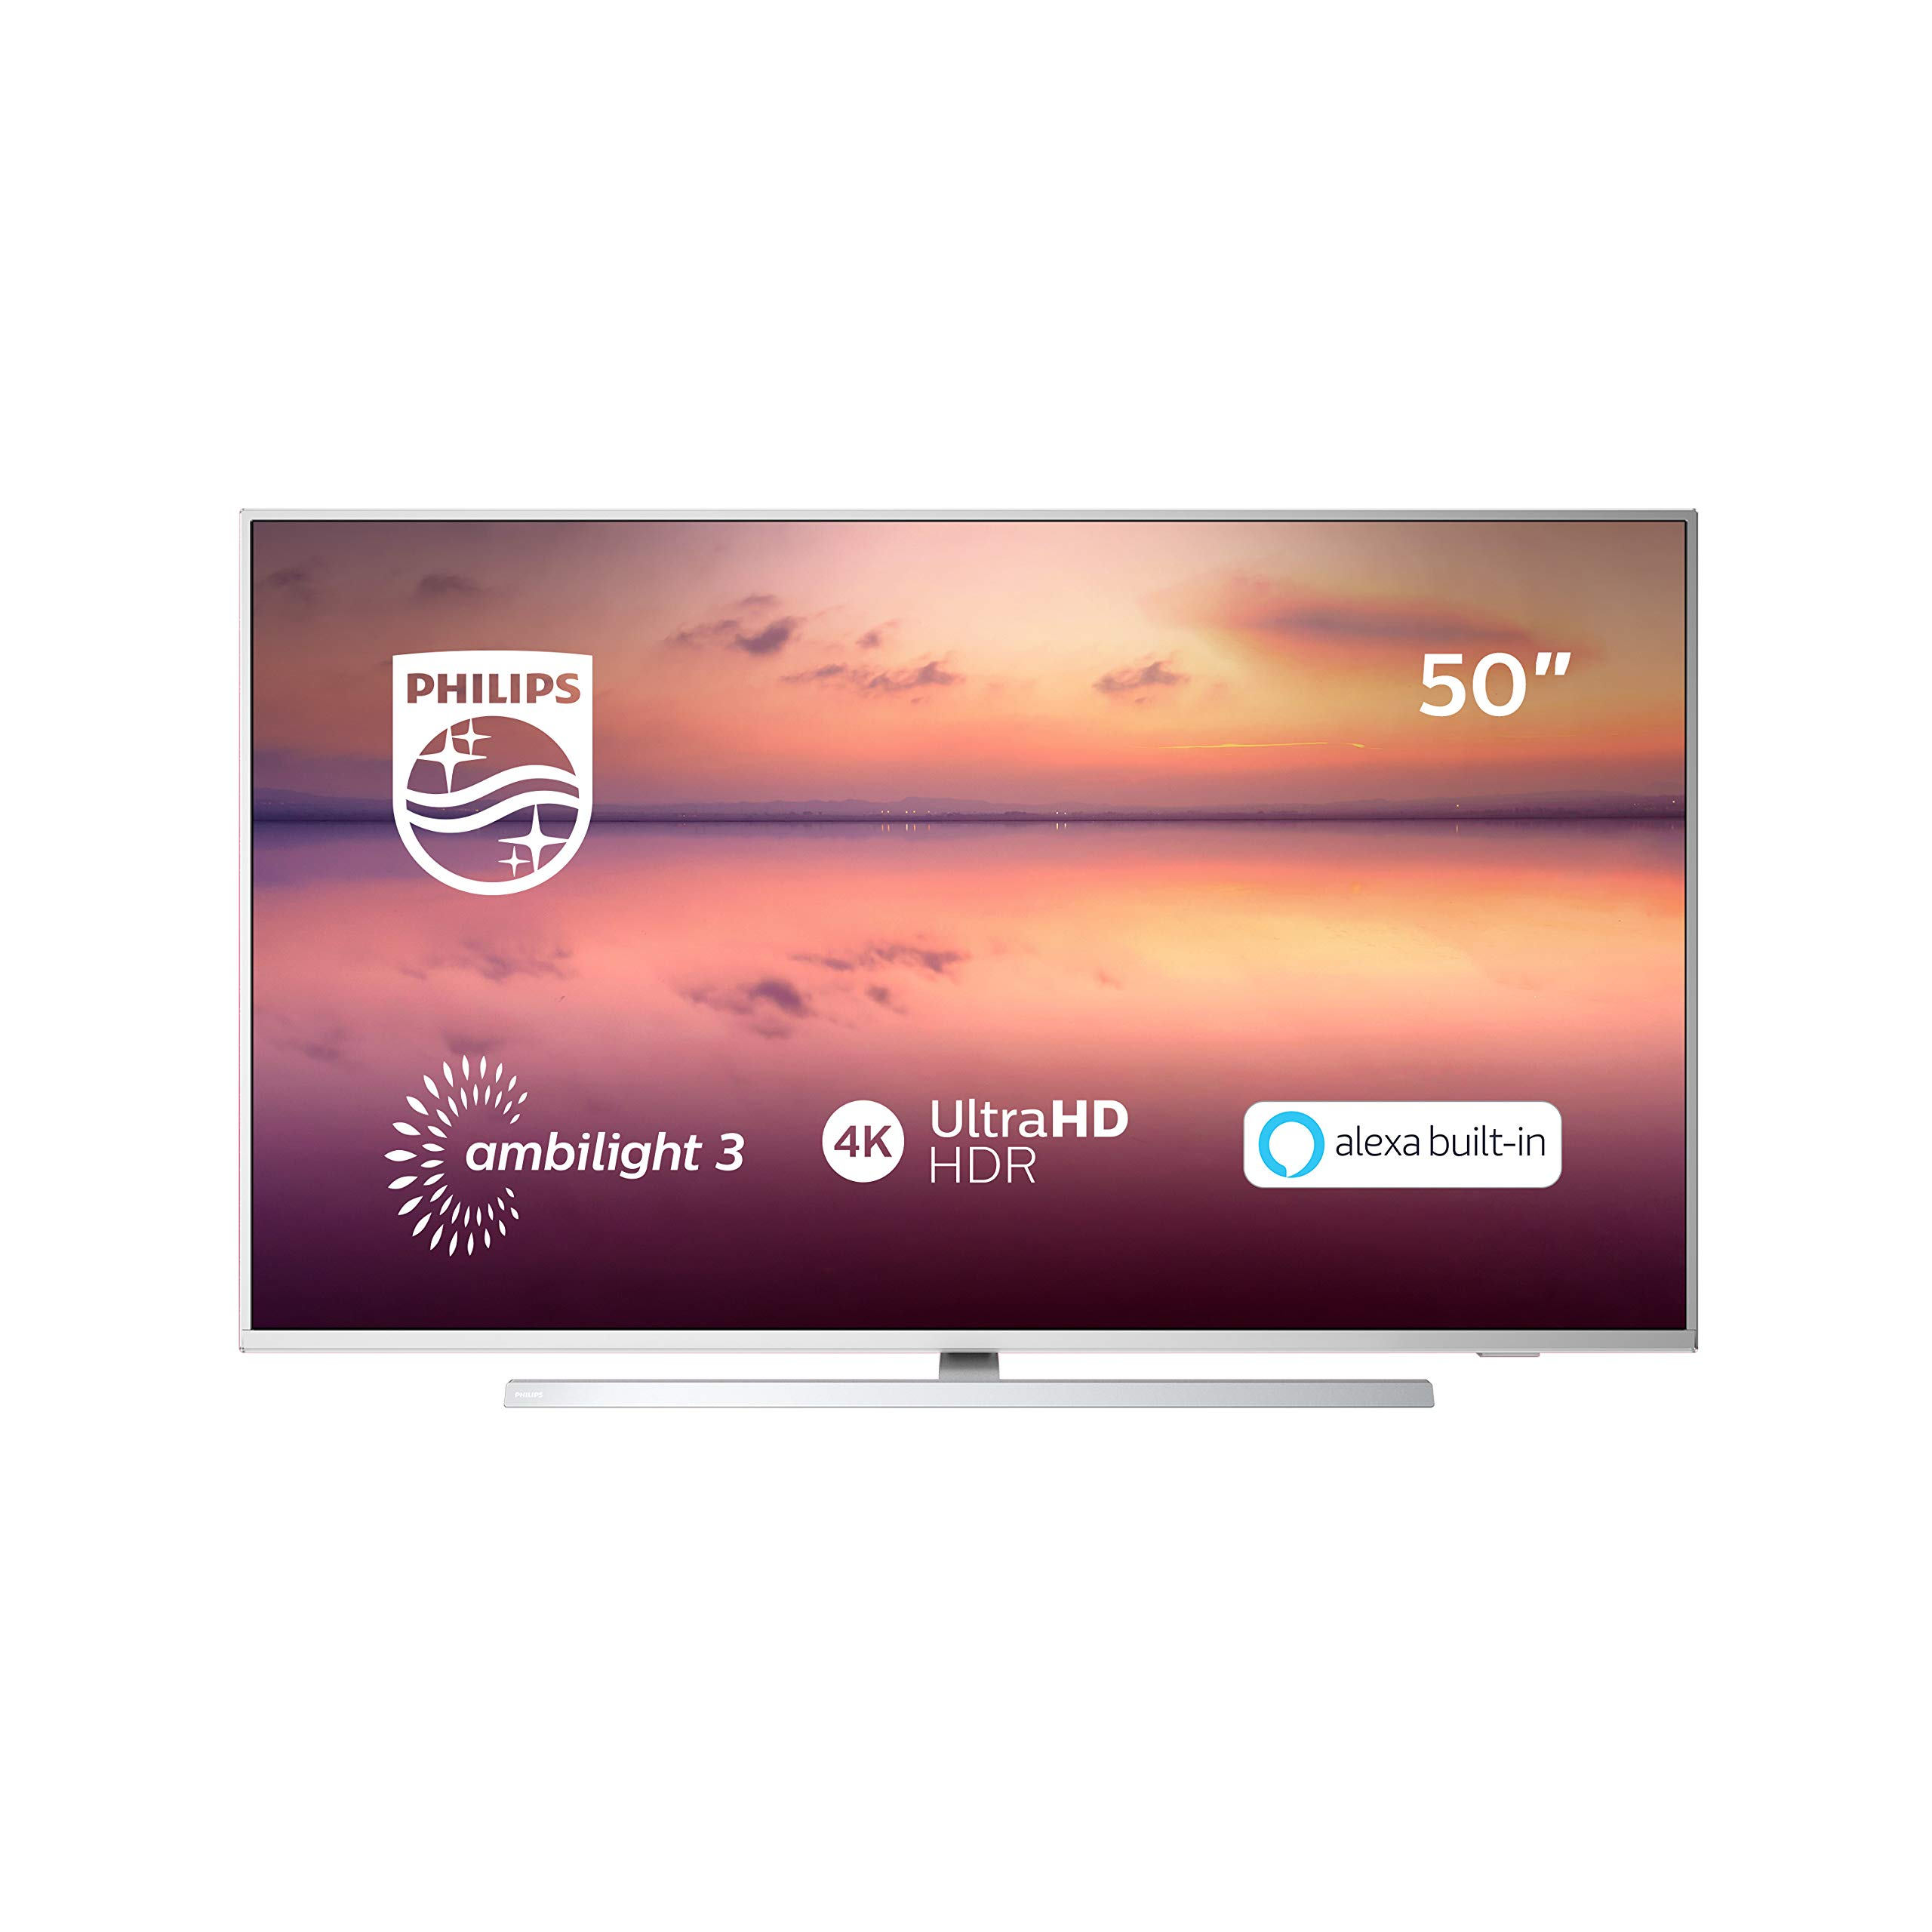 Philips 50PUS6814, Smart TV Alexa Ultra HD (Ambilight 3 Lados, HDR 10+, Dolby Vision + Atmos, 1200 PPI, Sintonizador Satélite, Peana Central Giratoria), Wireless/HDMI/USB, 50